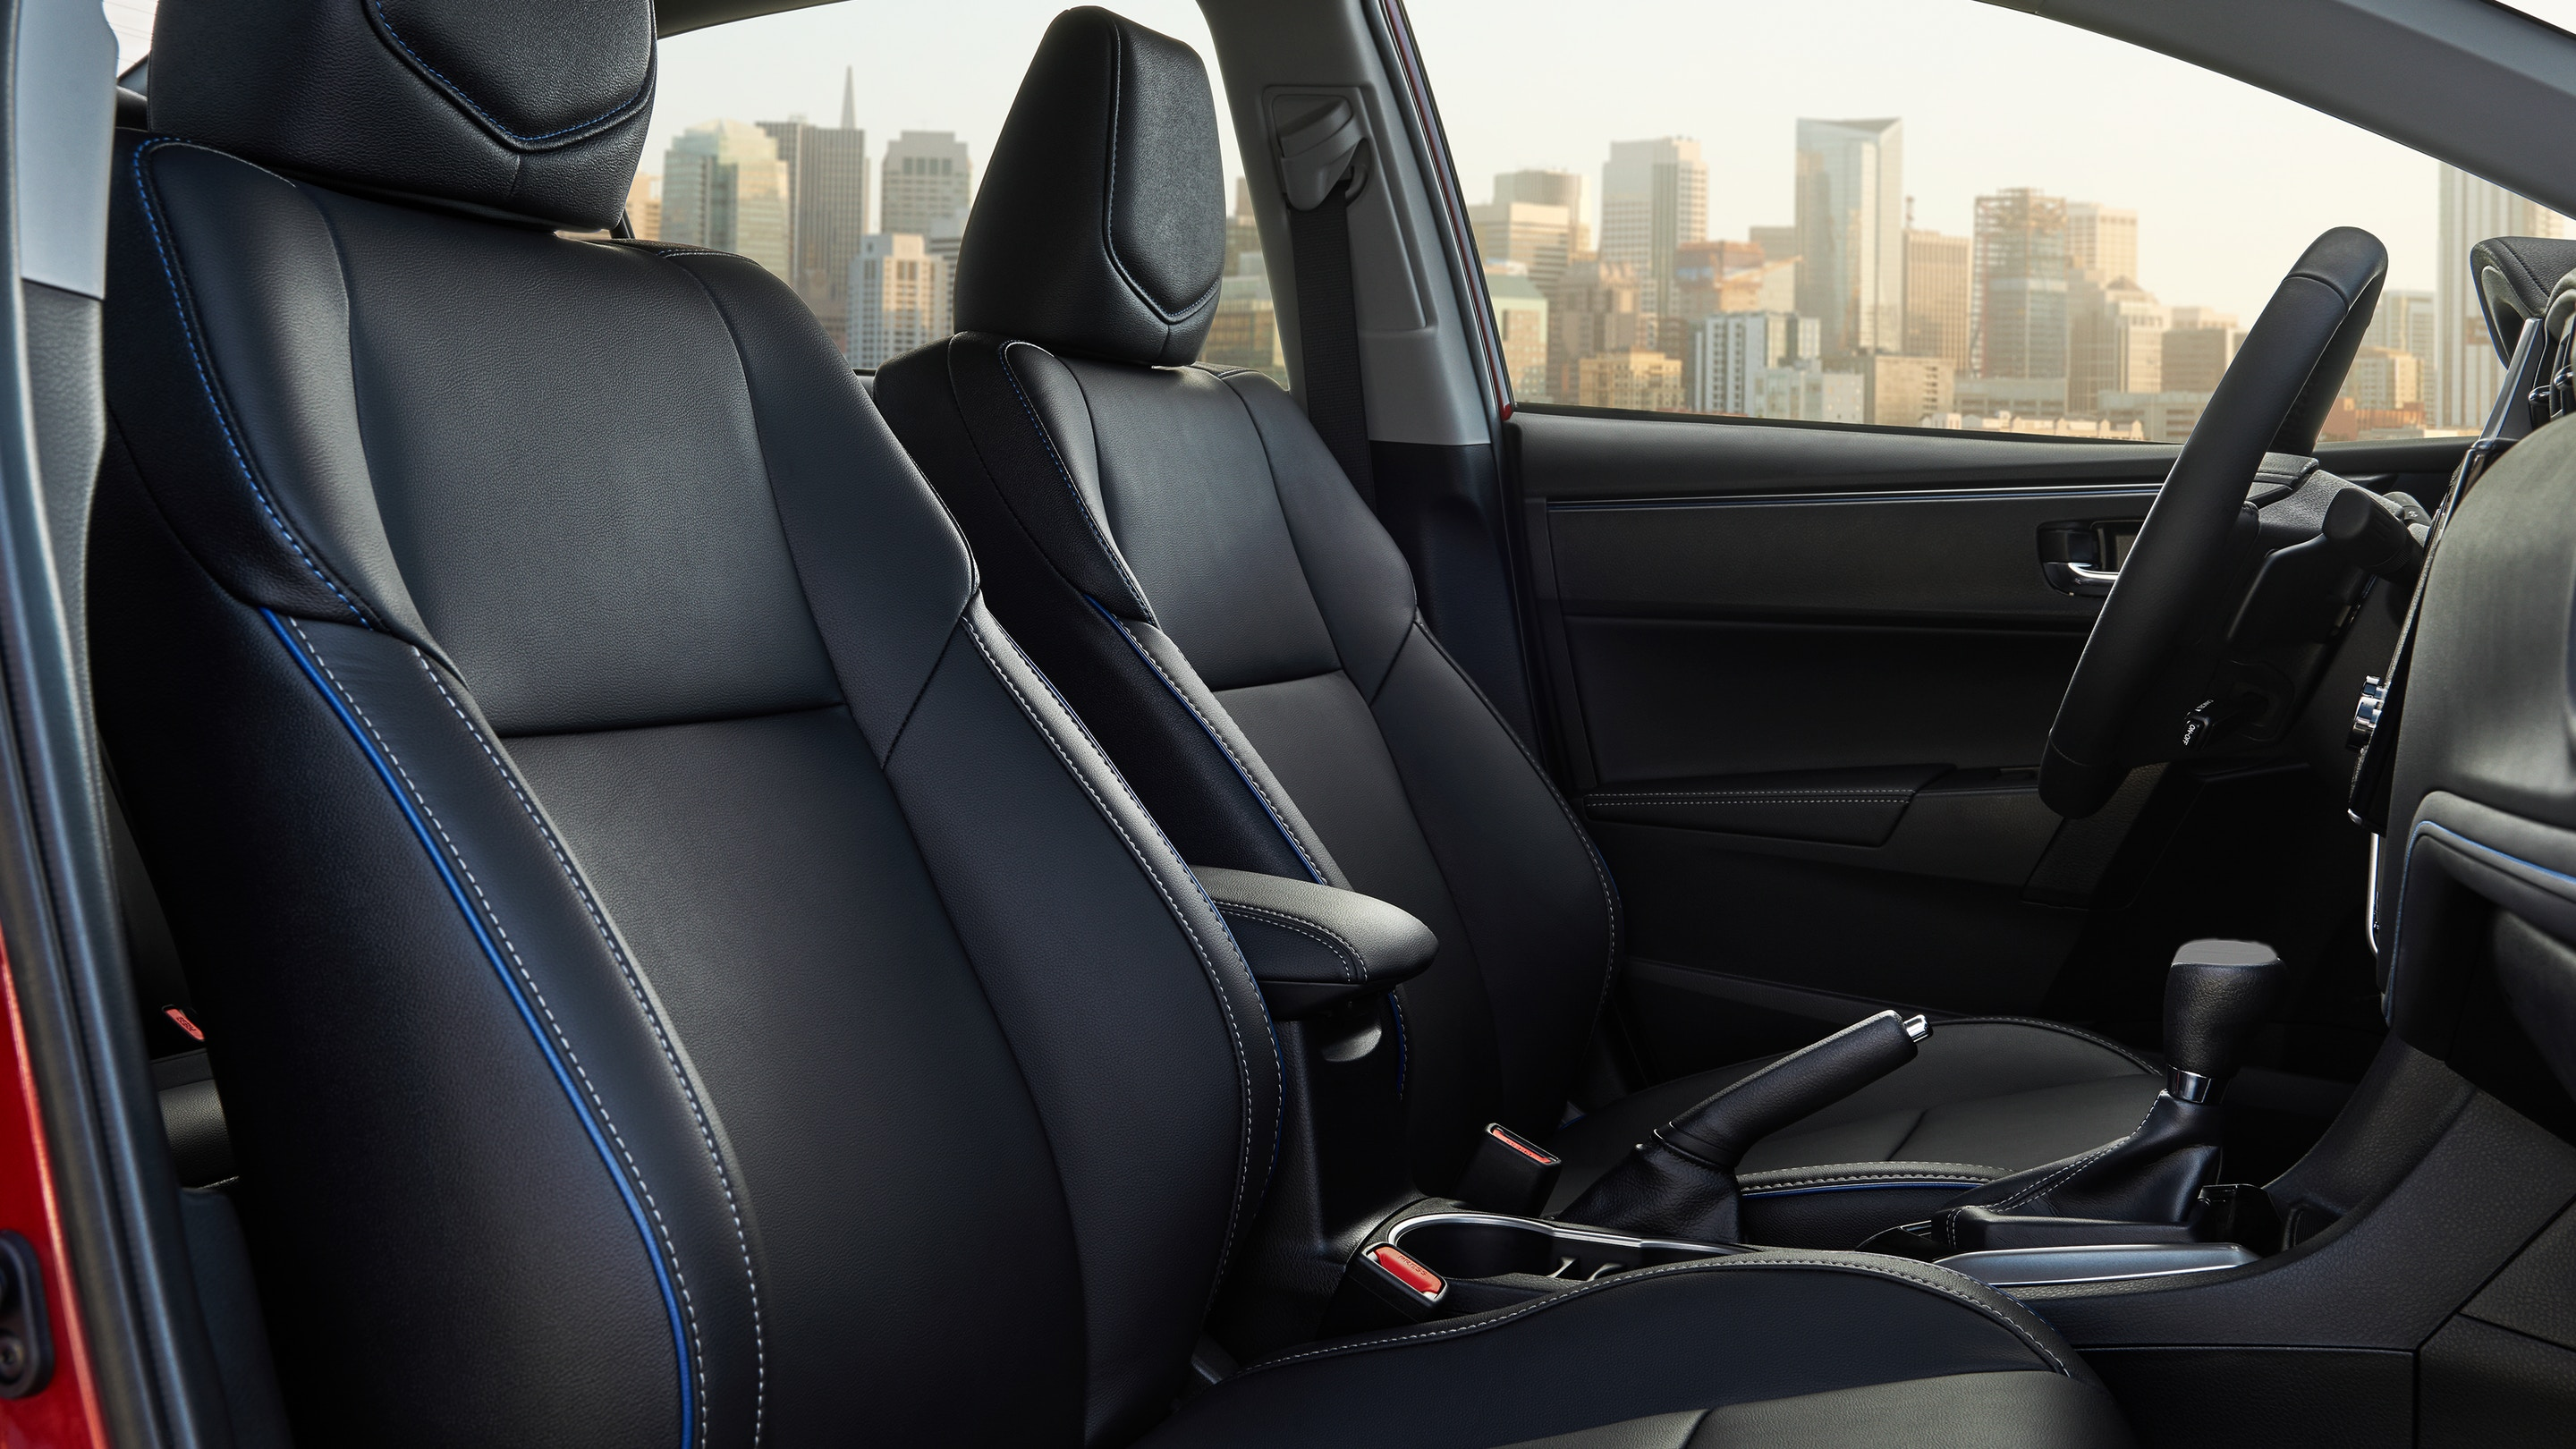 2019 Toyota Corolla SofTex-Trimmed Seating